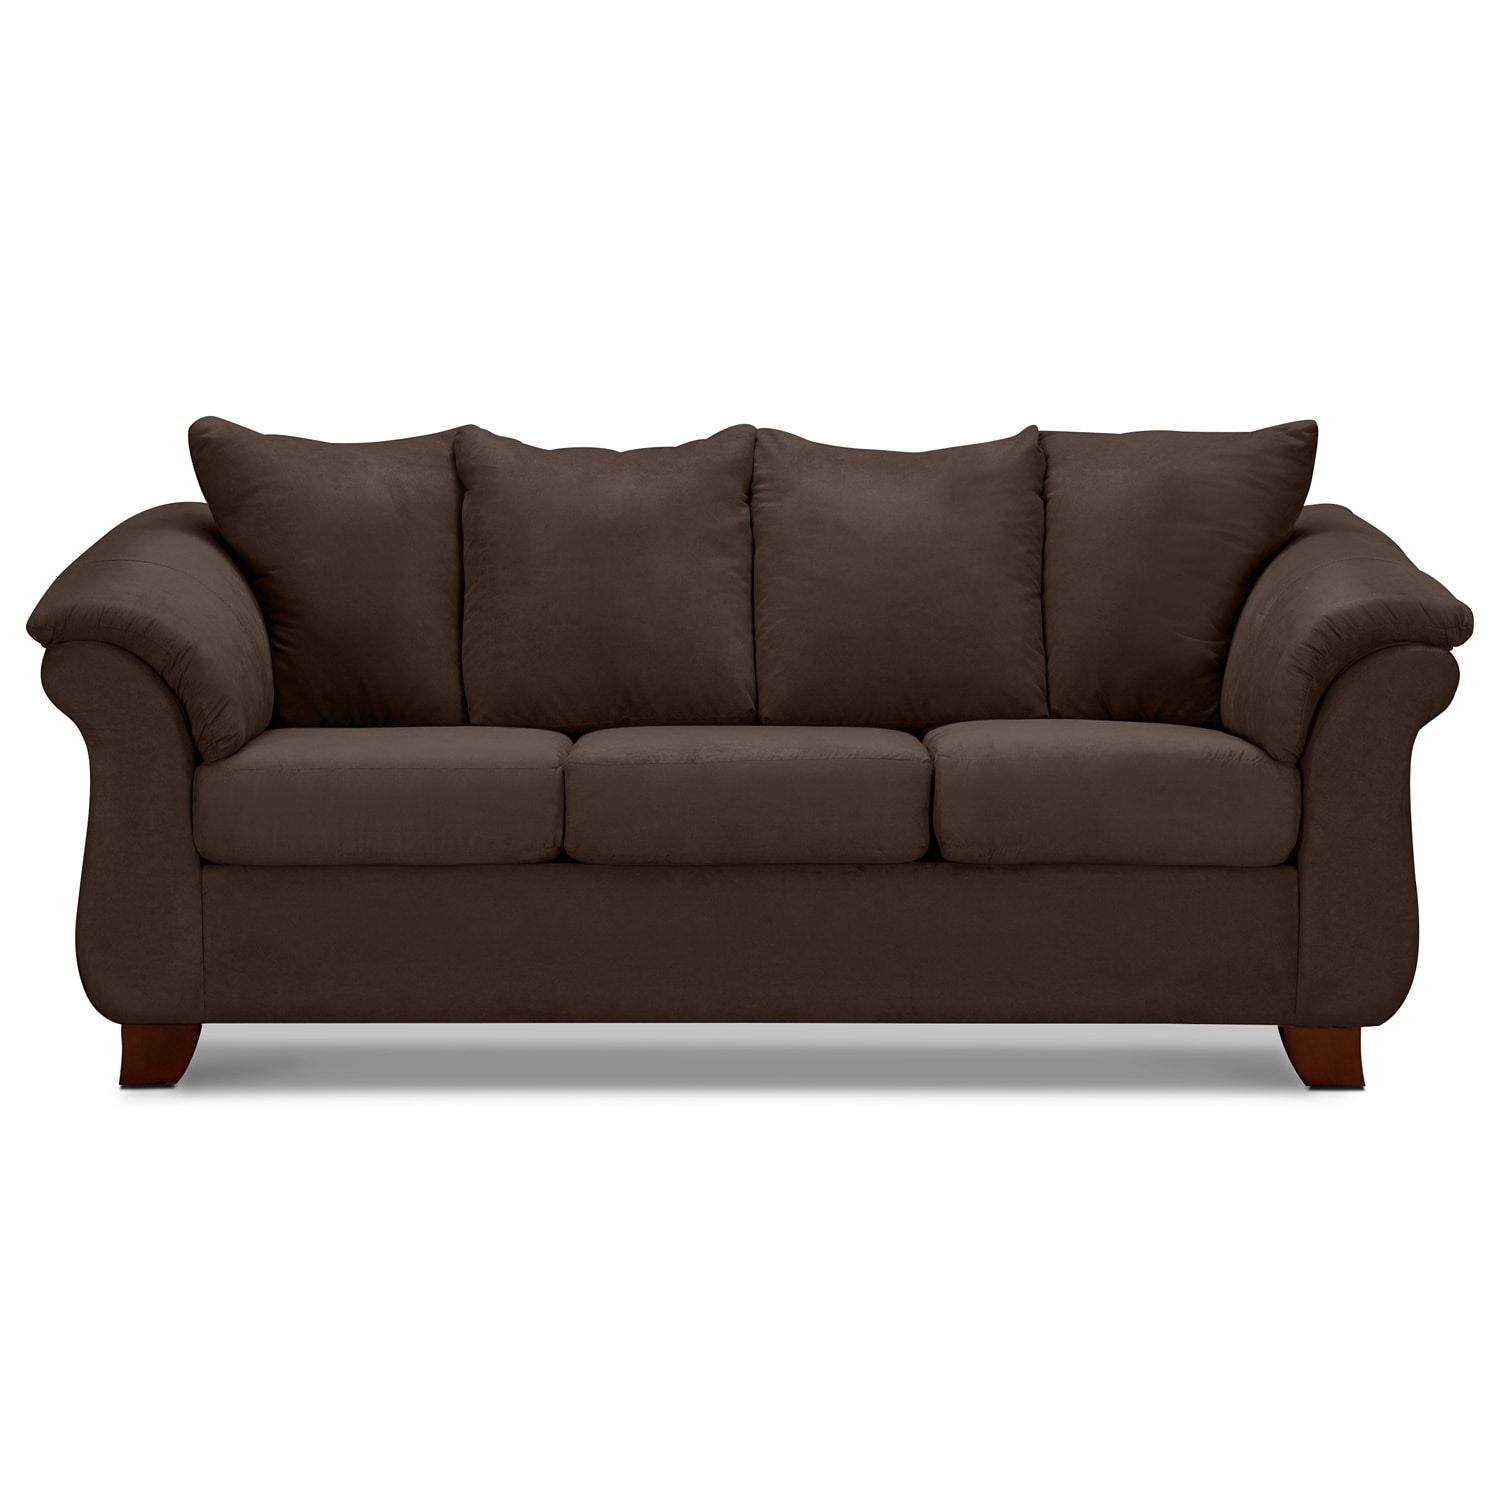 adrian sofa chocolate value city furniture. Black Bedroom Furniture Sets. Home Design Ideas